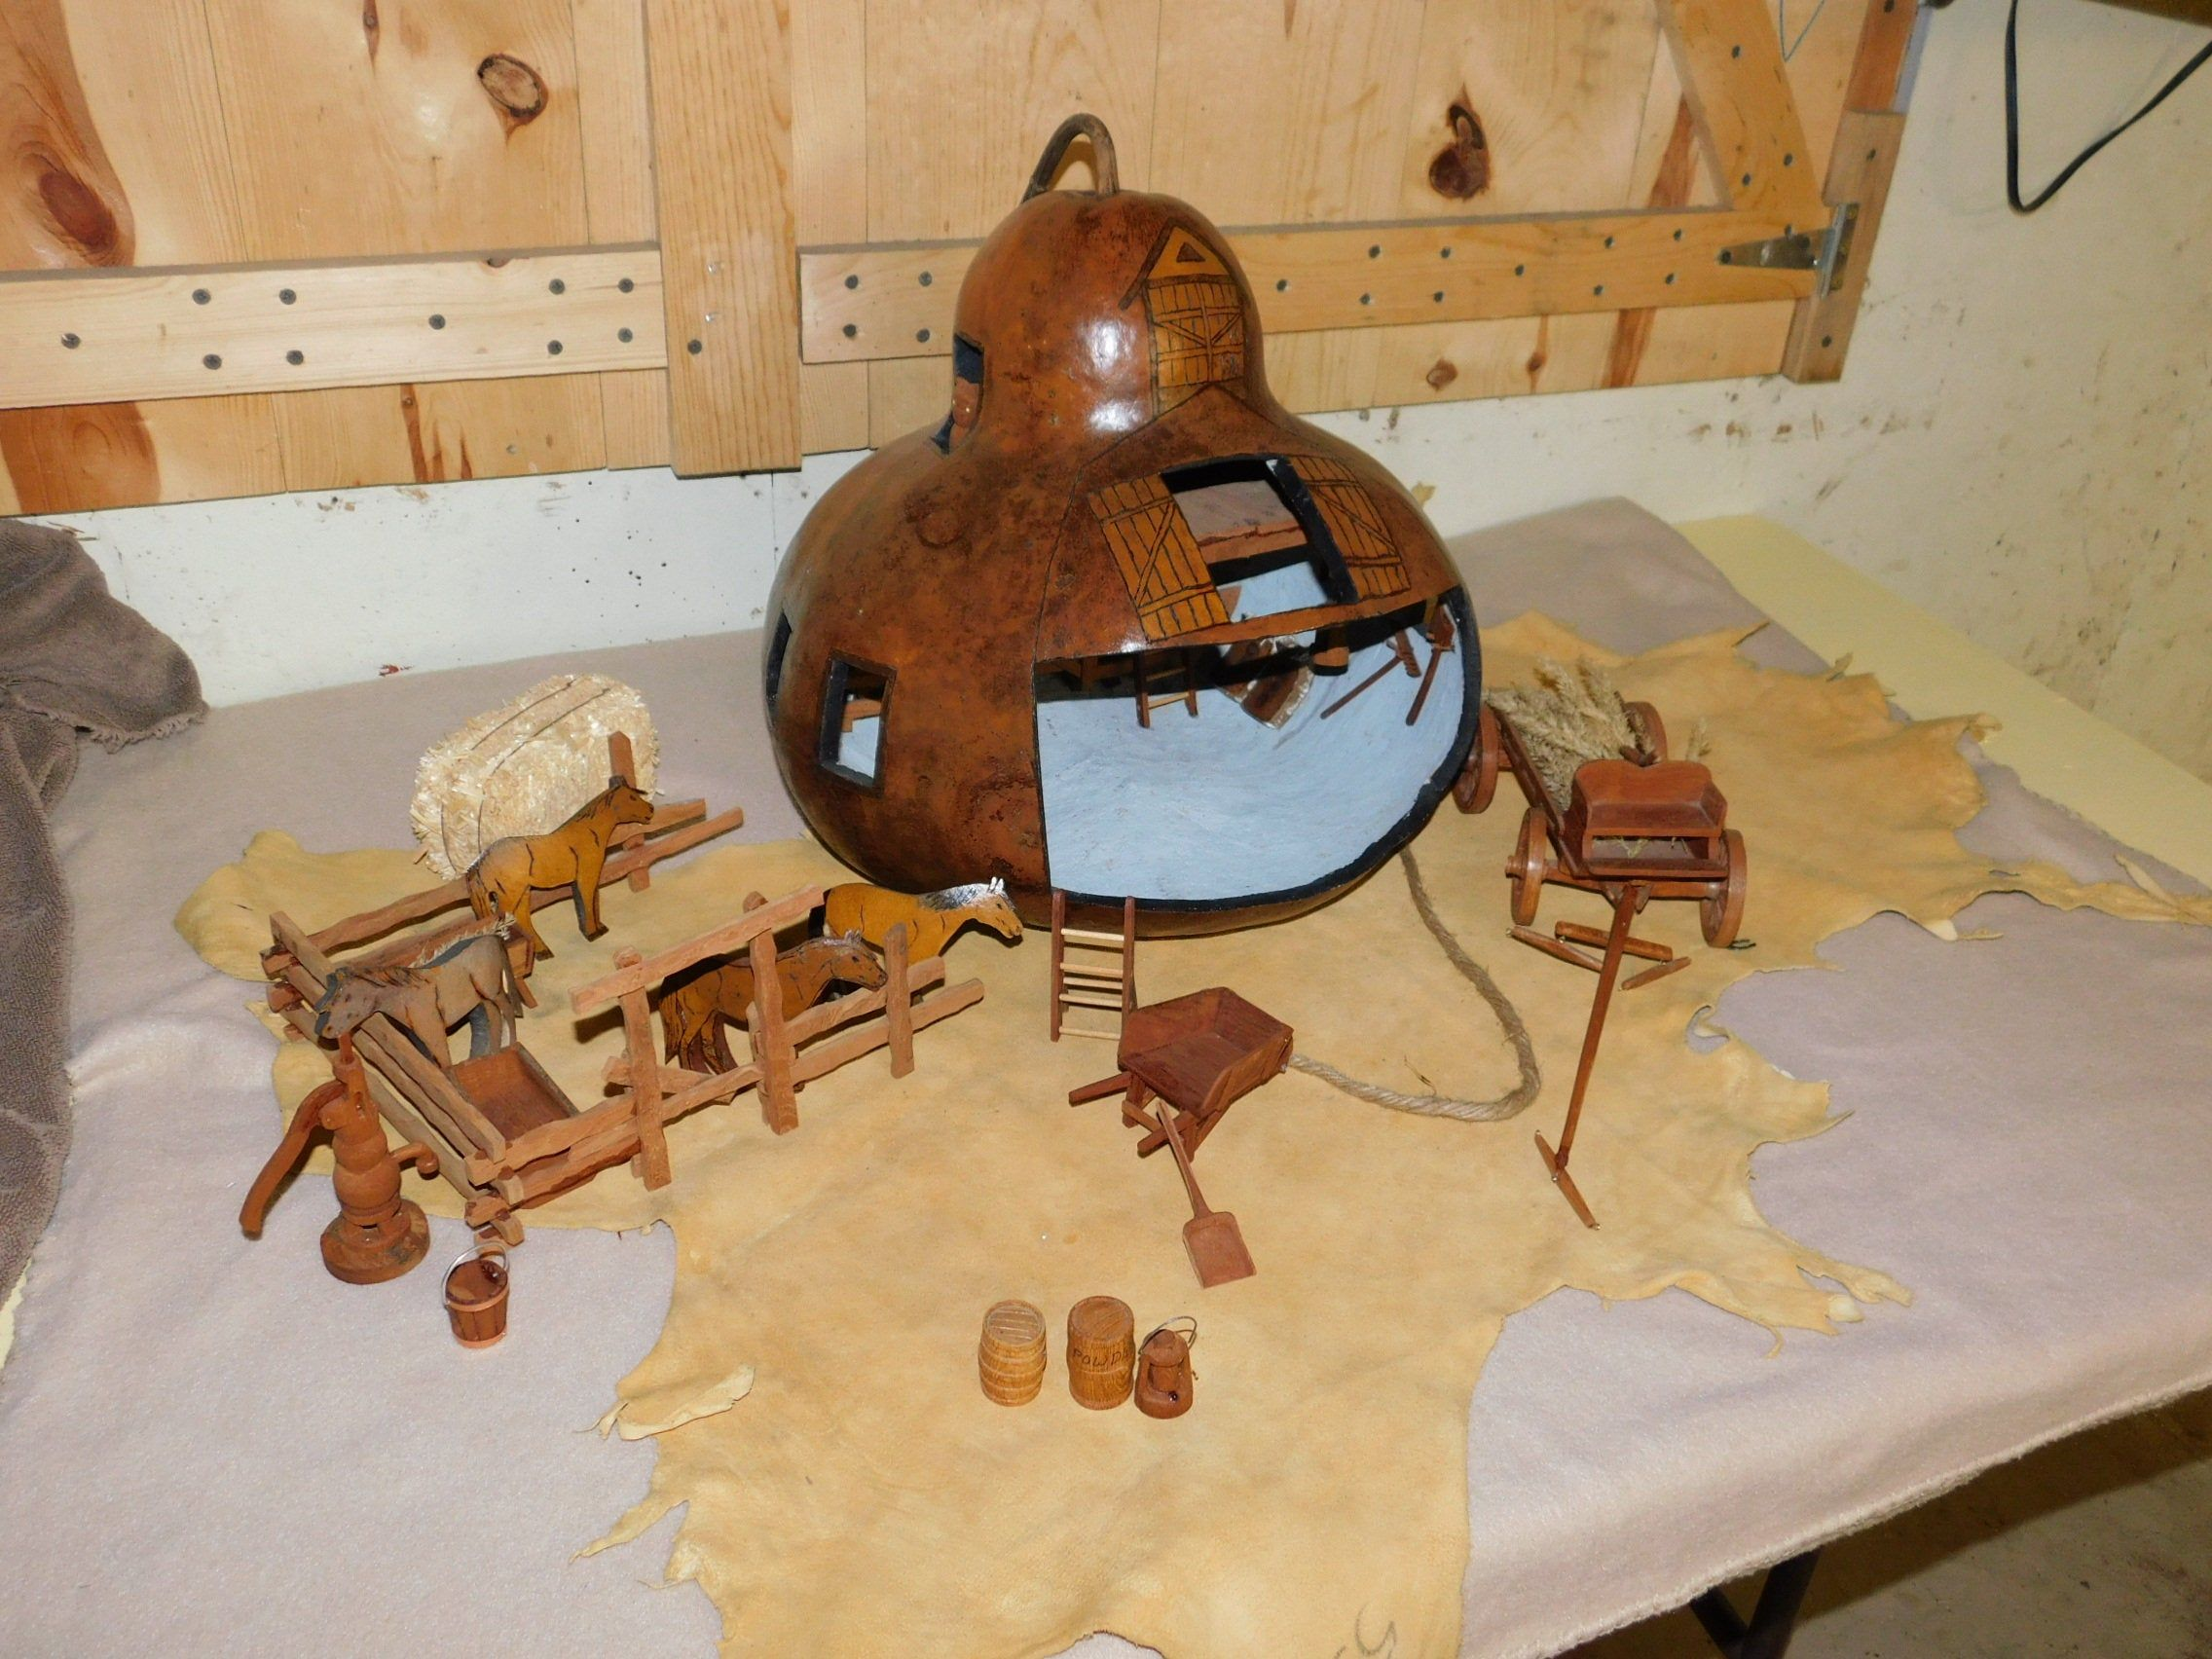 Country Western Gourd Art & Hand Carved Barnyard Ranch Scene Barn Loft Stalls Horses Corral Old West Farm Wagon Hand Water Pump Tools OOAK #gypsysetup